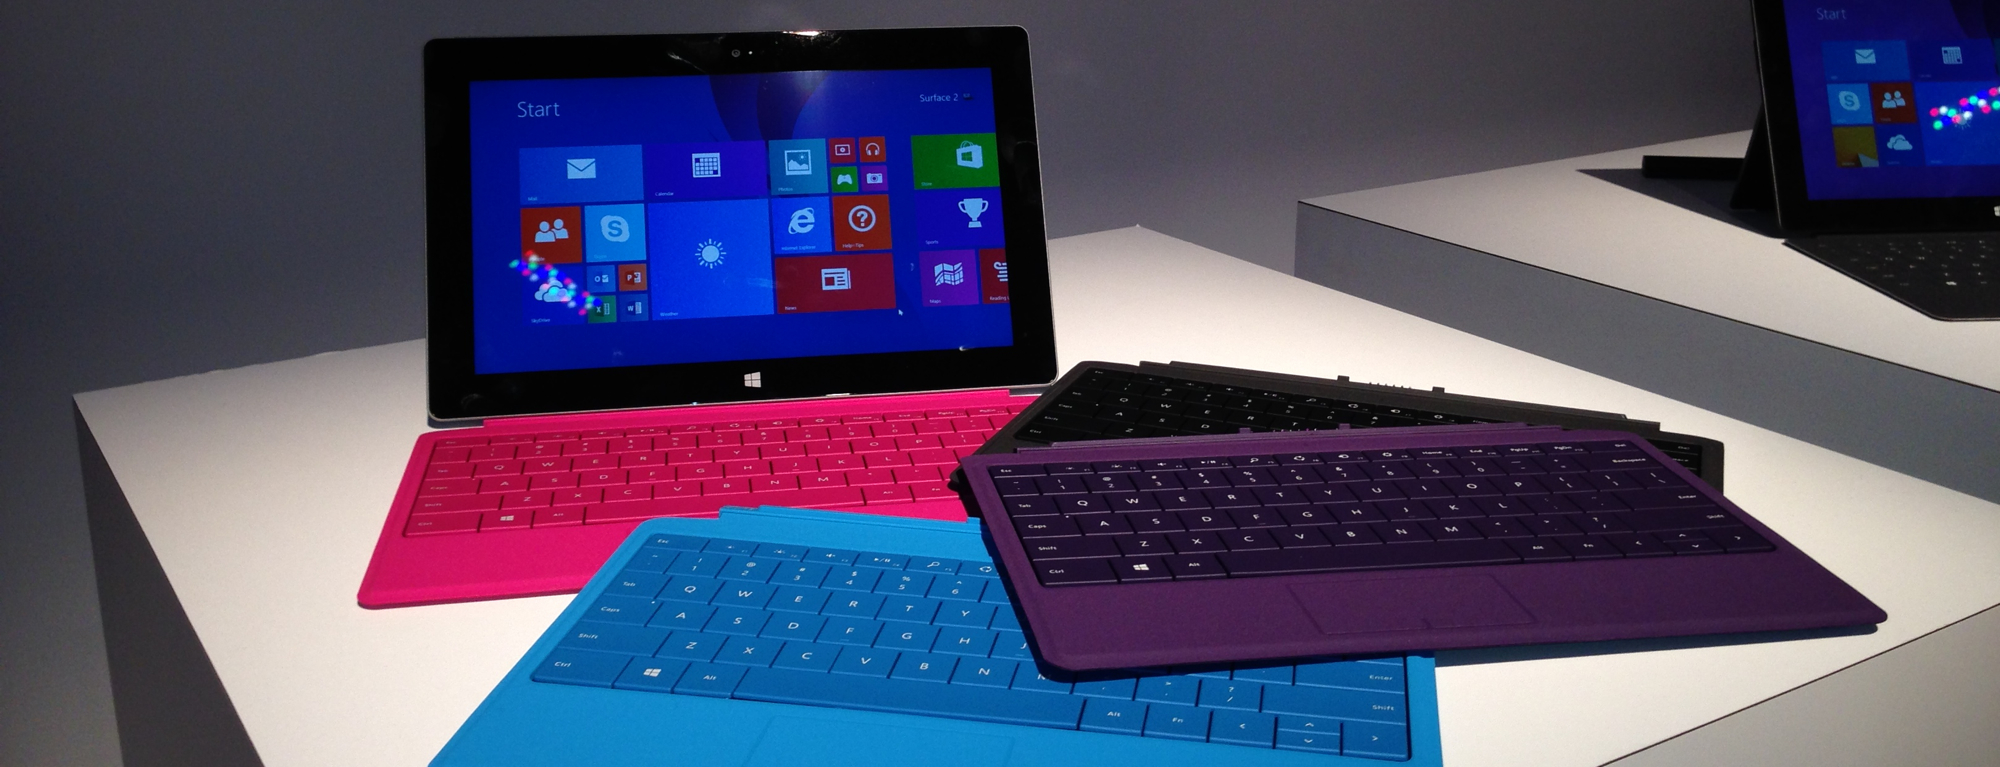 surface Surface 2 launch and Nokia buy: Microsoft is playing the smartphone and tablet long game